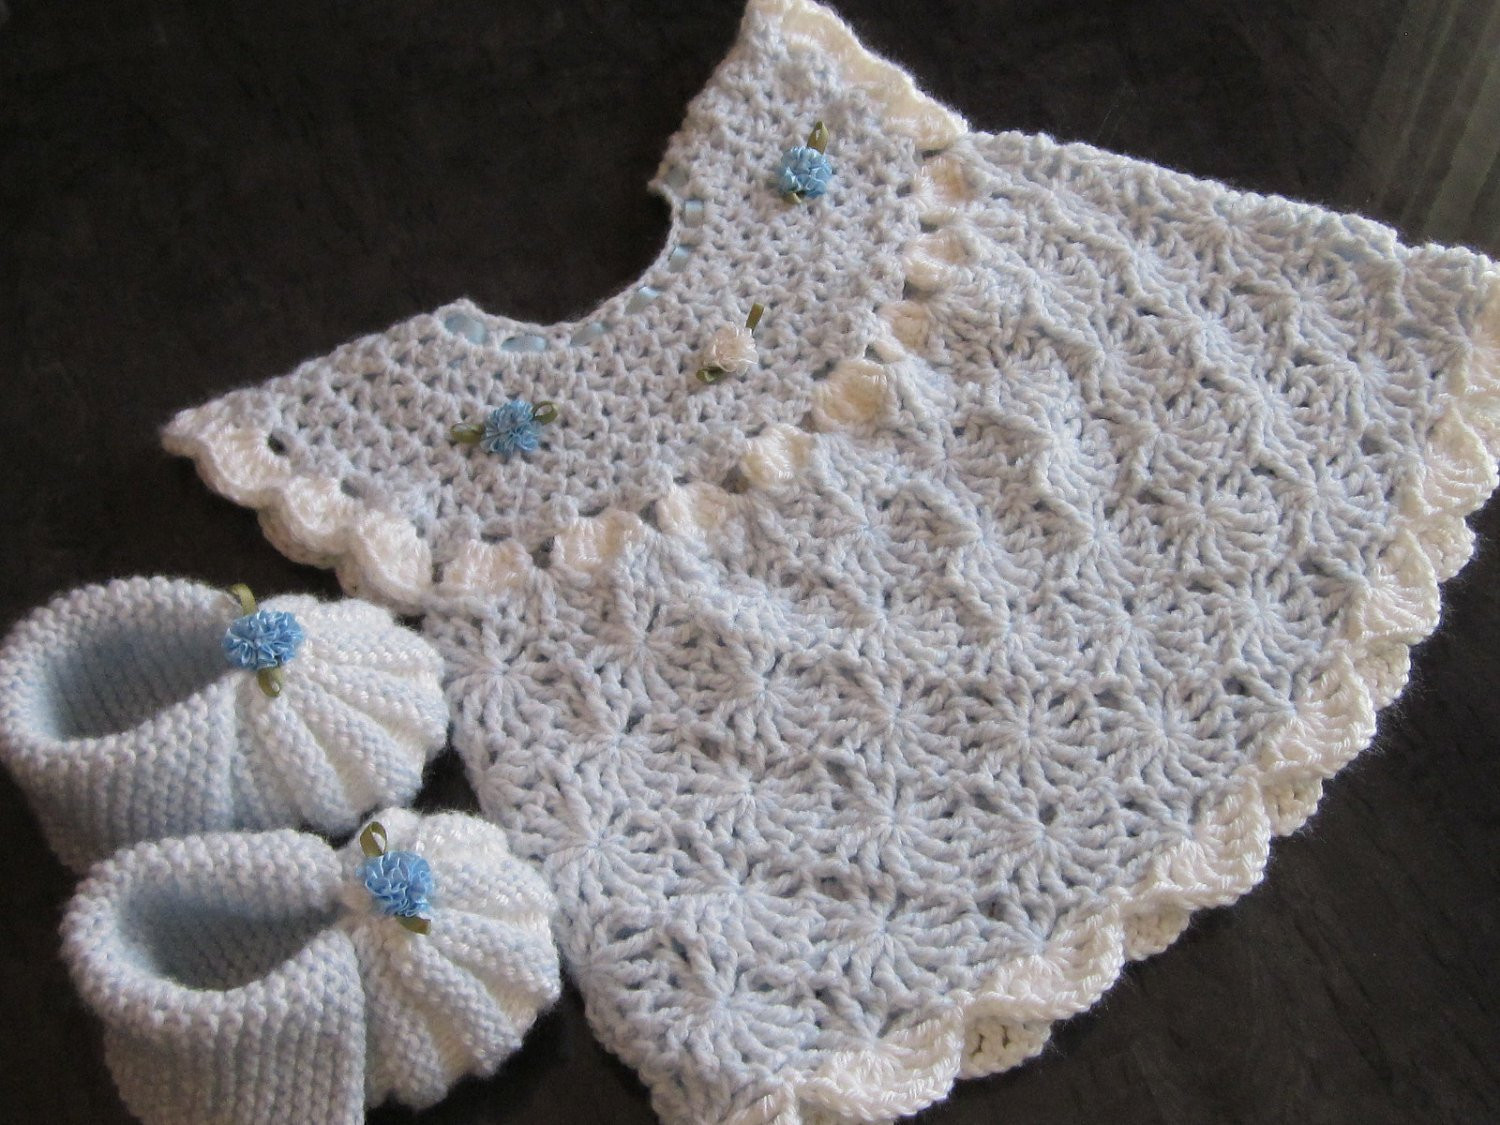 Crochet Baby Set Fresh Handmade Baby Crochet Dress and Booties Set 0 6 Month Of Charming 49 Pics Crochet Baby Set